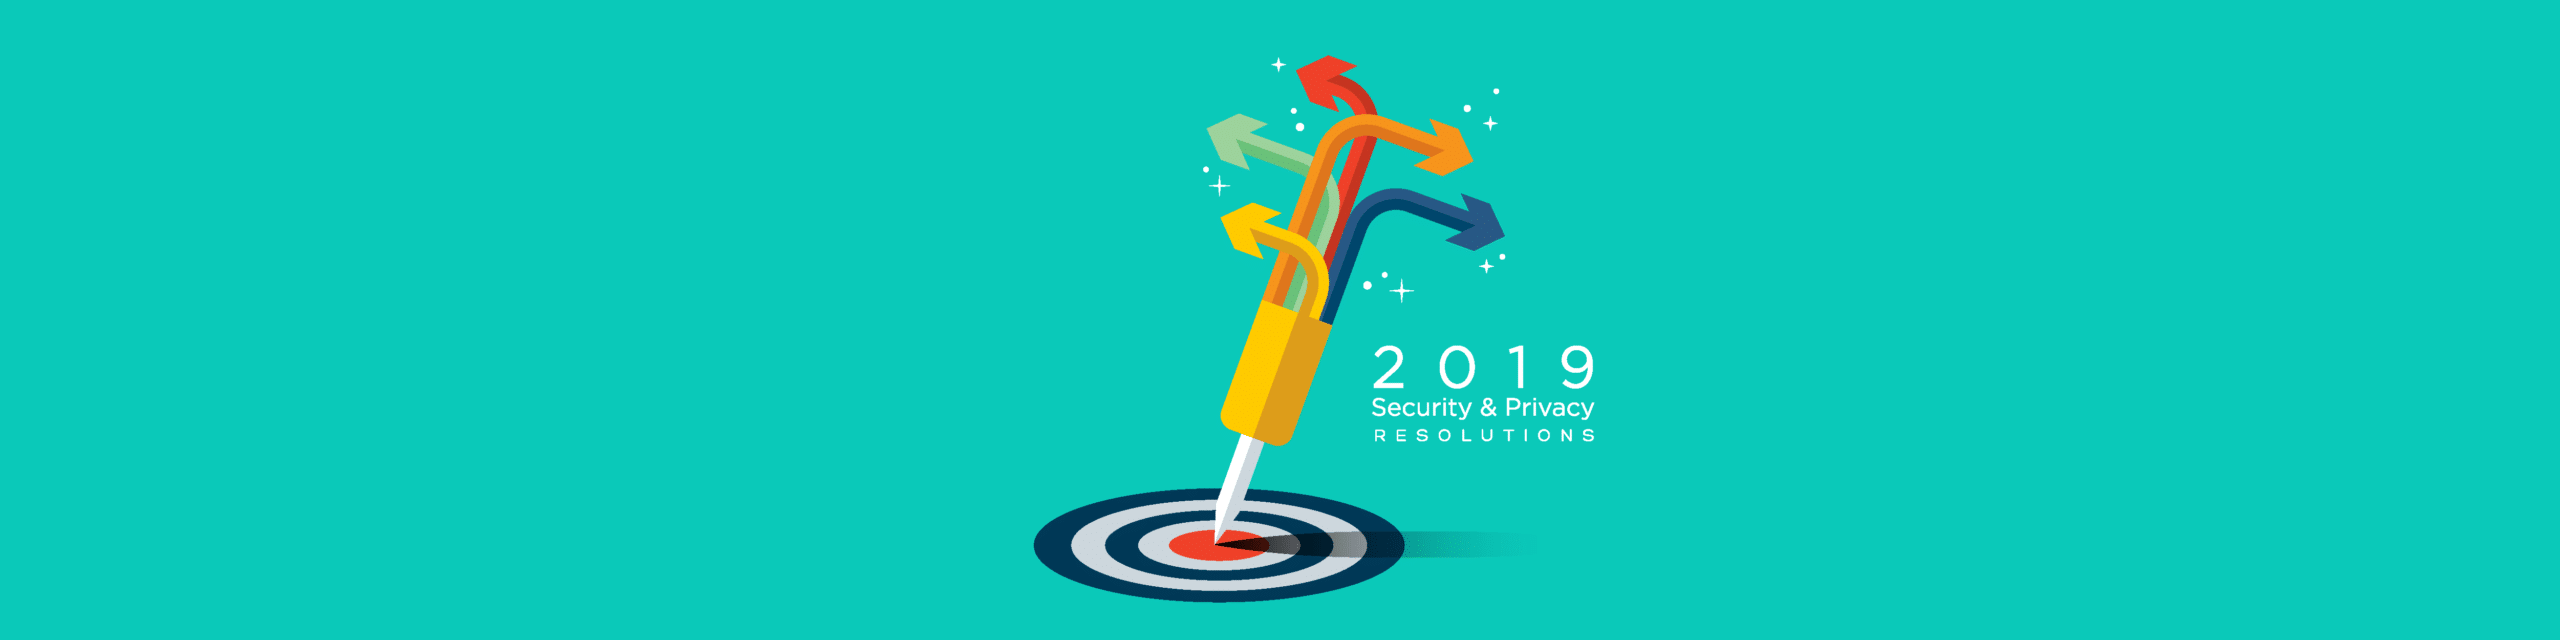 2019 security and privacy resolutions